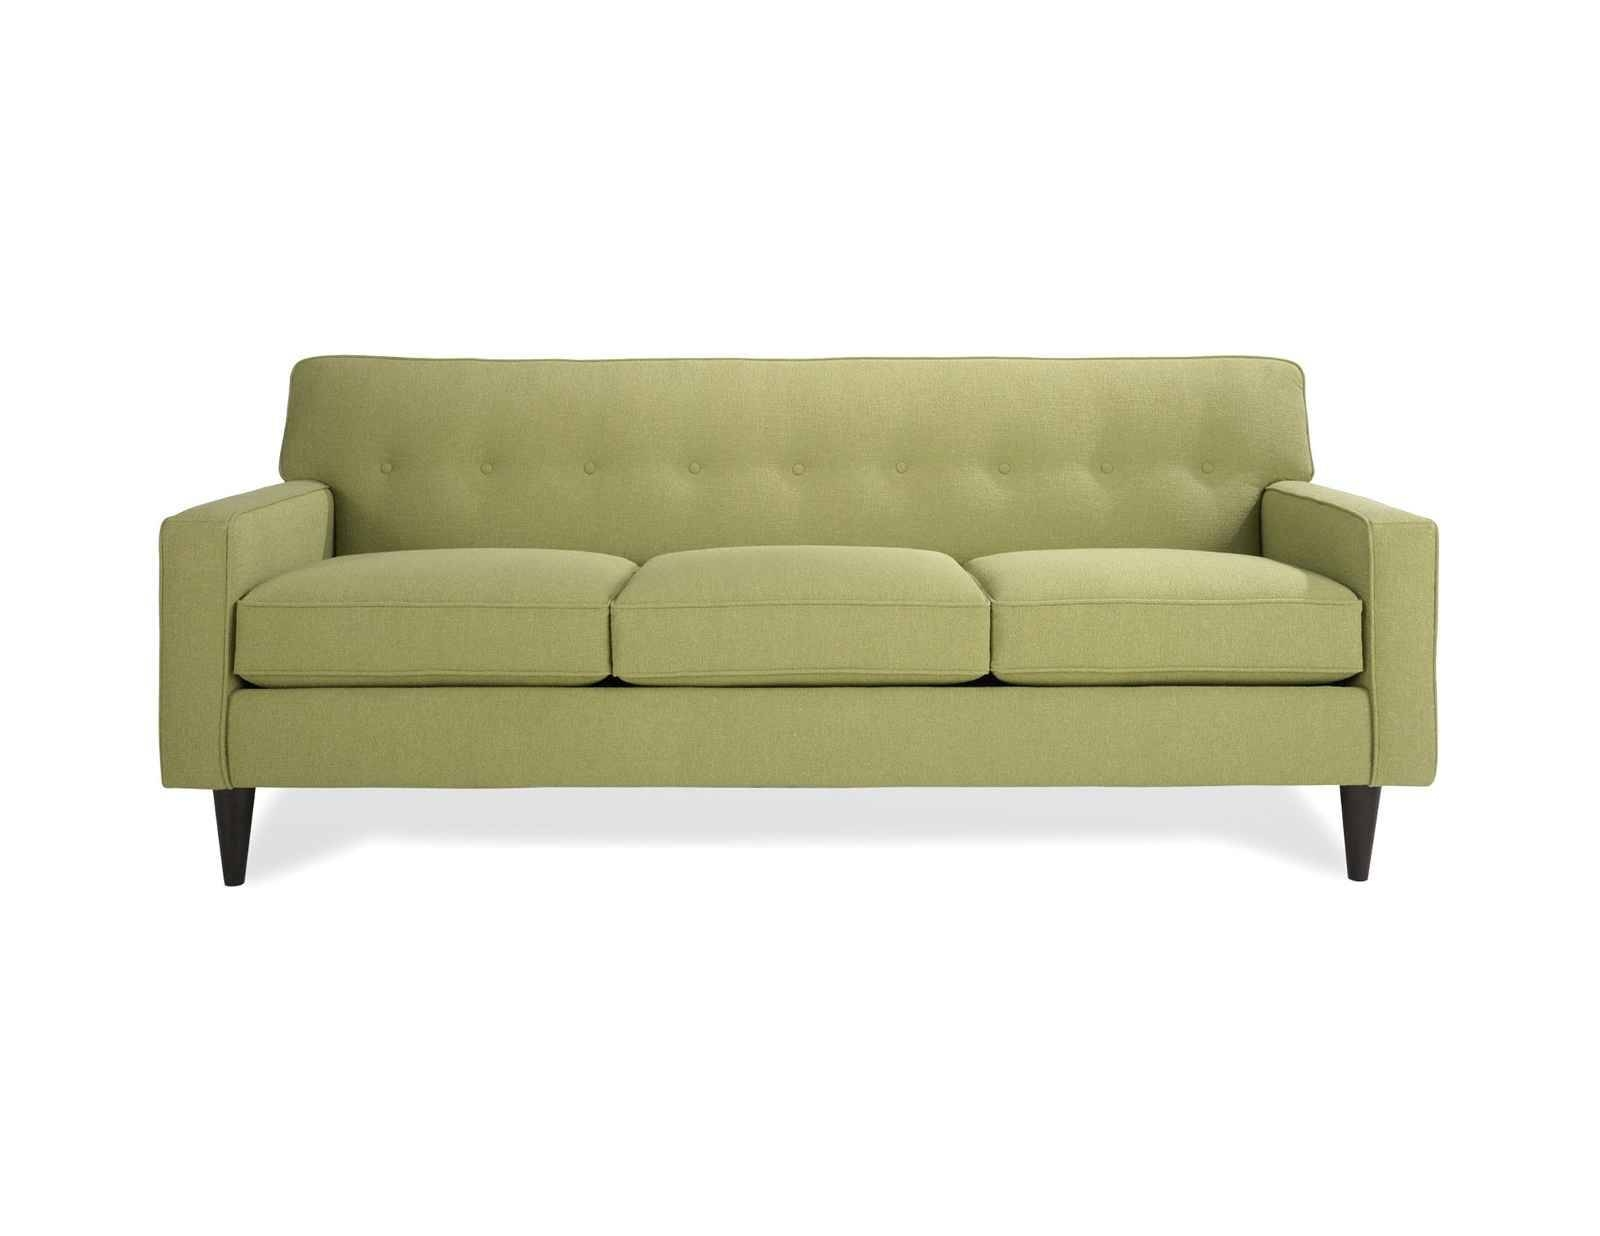 Spectacular Sofas And Loveseats Cheap #3760 : Furniture - Best throughout Cool Cheap Sofas (Image 30 of 30)